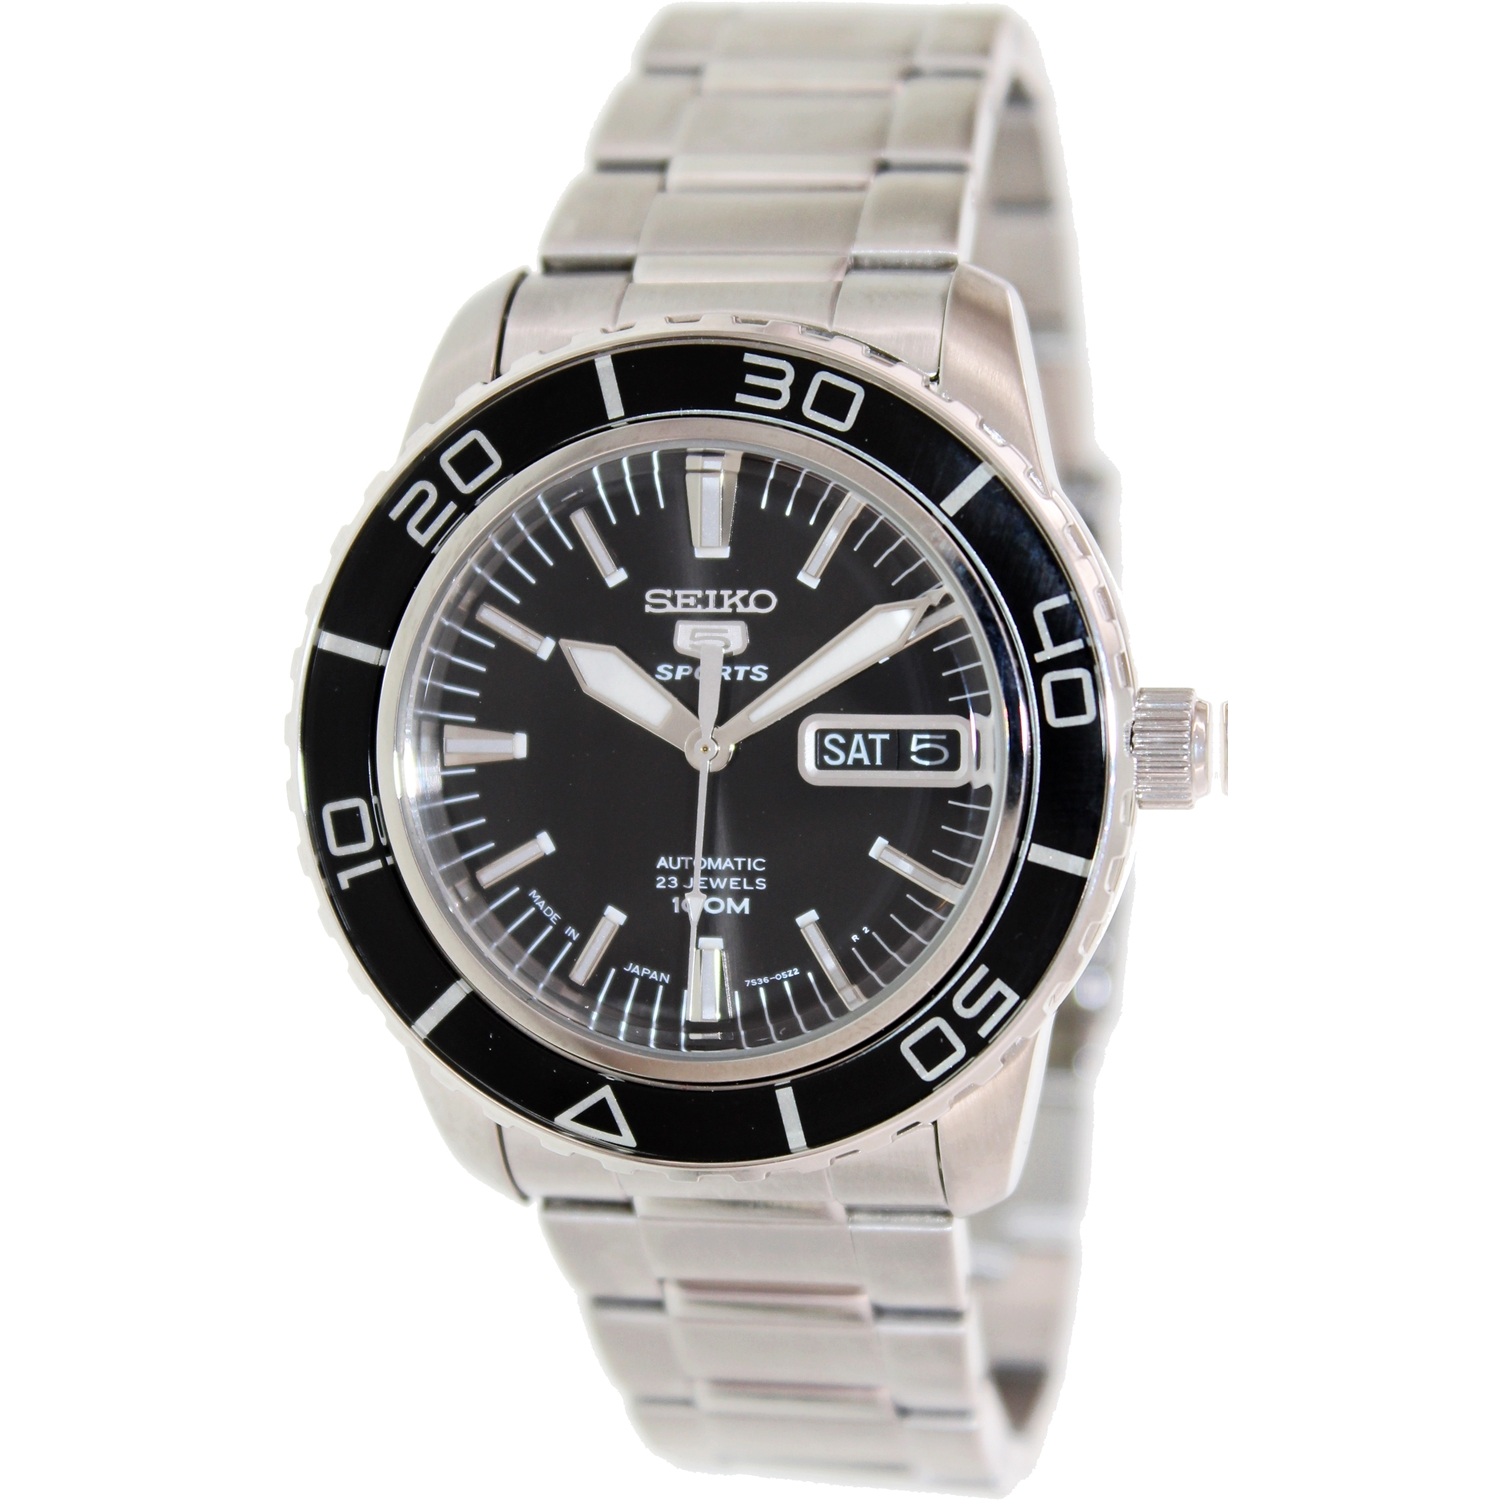 Seiko Men's 5 Automatic SNZH55K Silver Stainless-Steel Automatic Watch